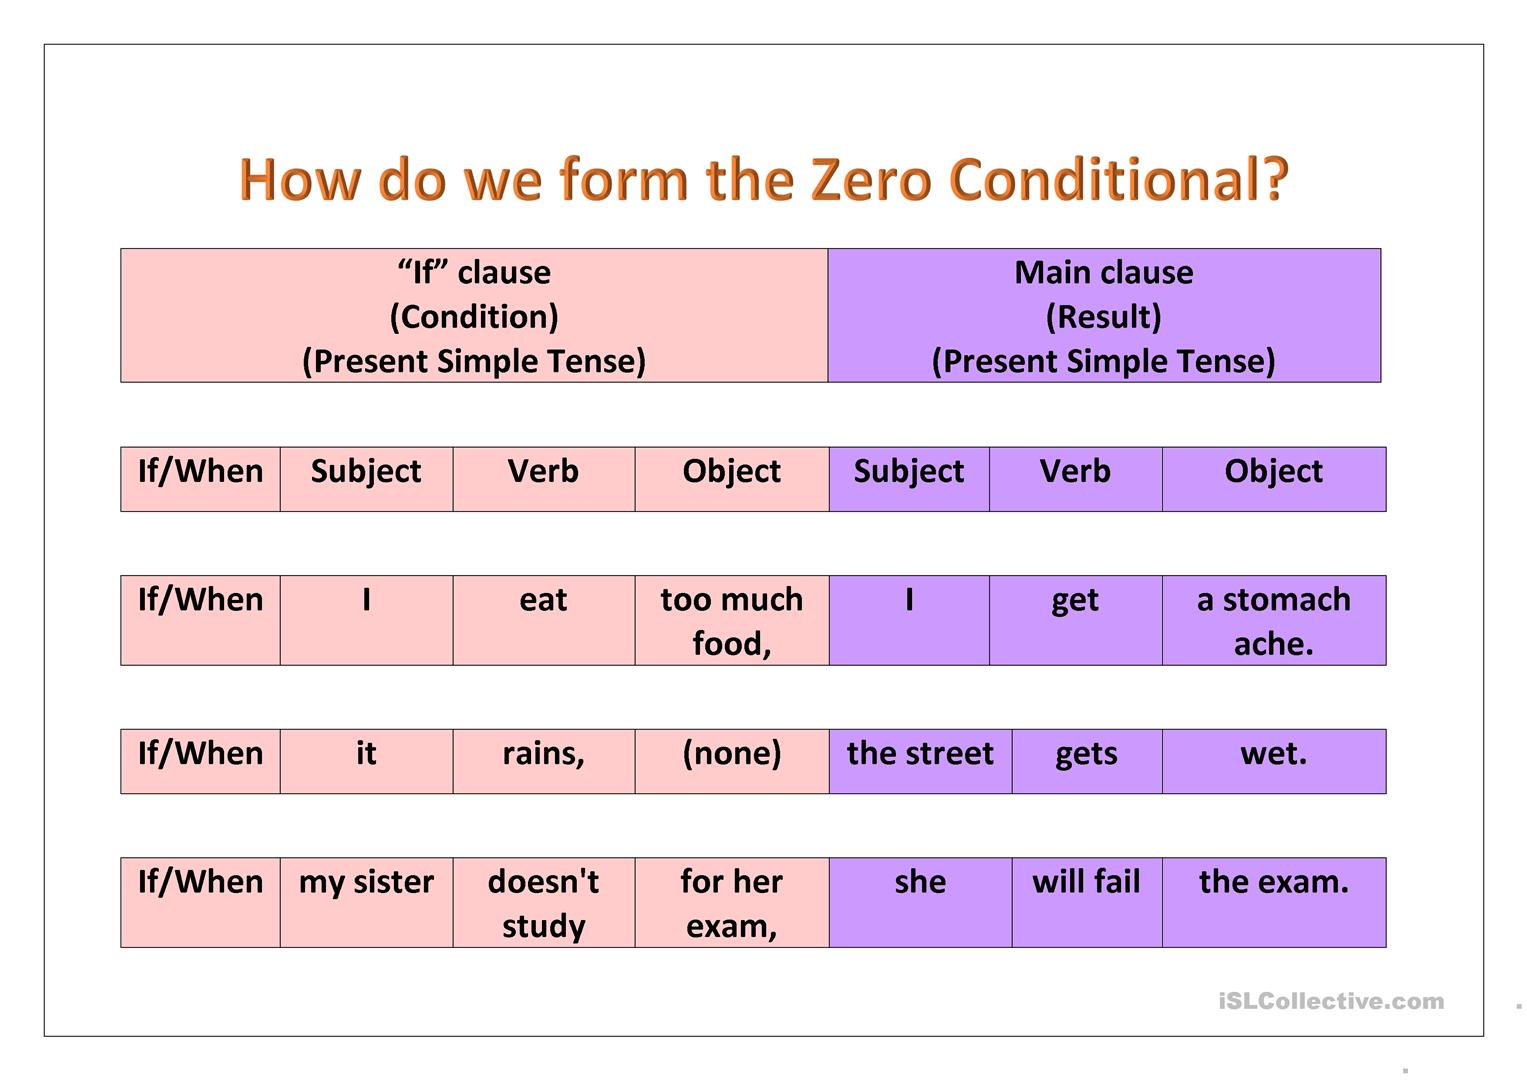 Zero Conditional Grammar Guide